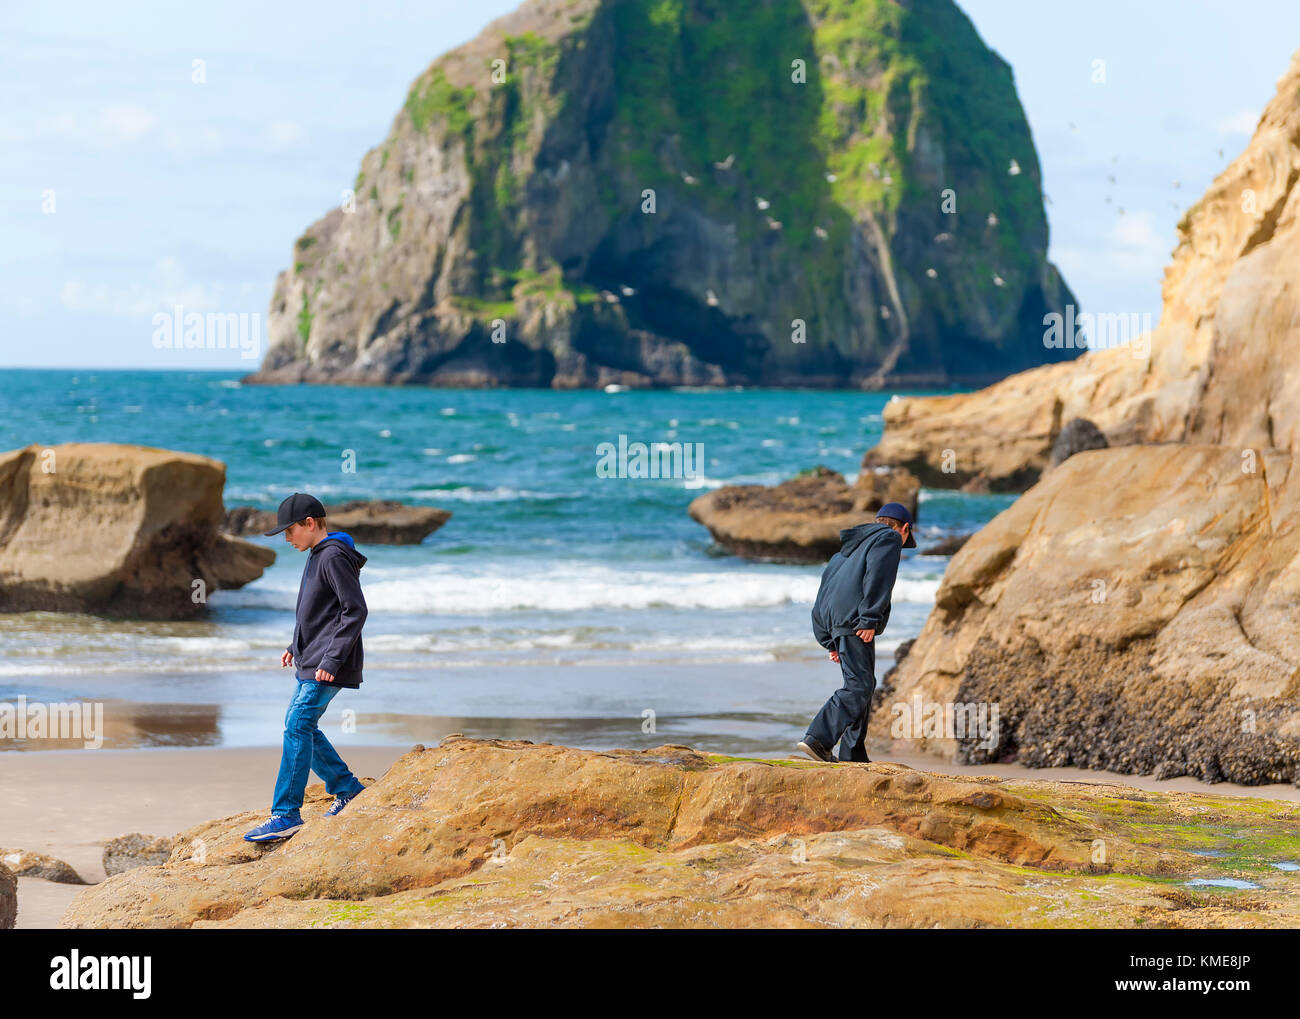 Two boys explore the tidepools at Cape Kiwanda in Pacific City, Oregon,  Landmark haystack rock surrounded by the - Stock Image